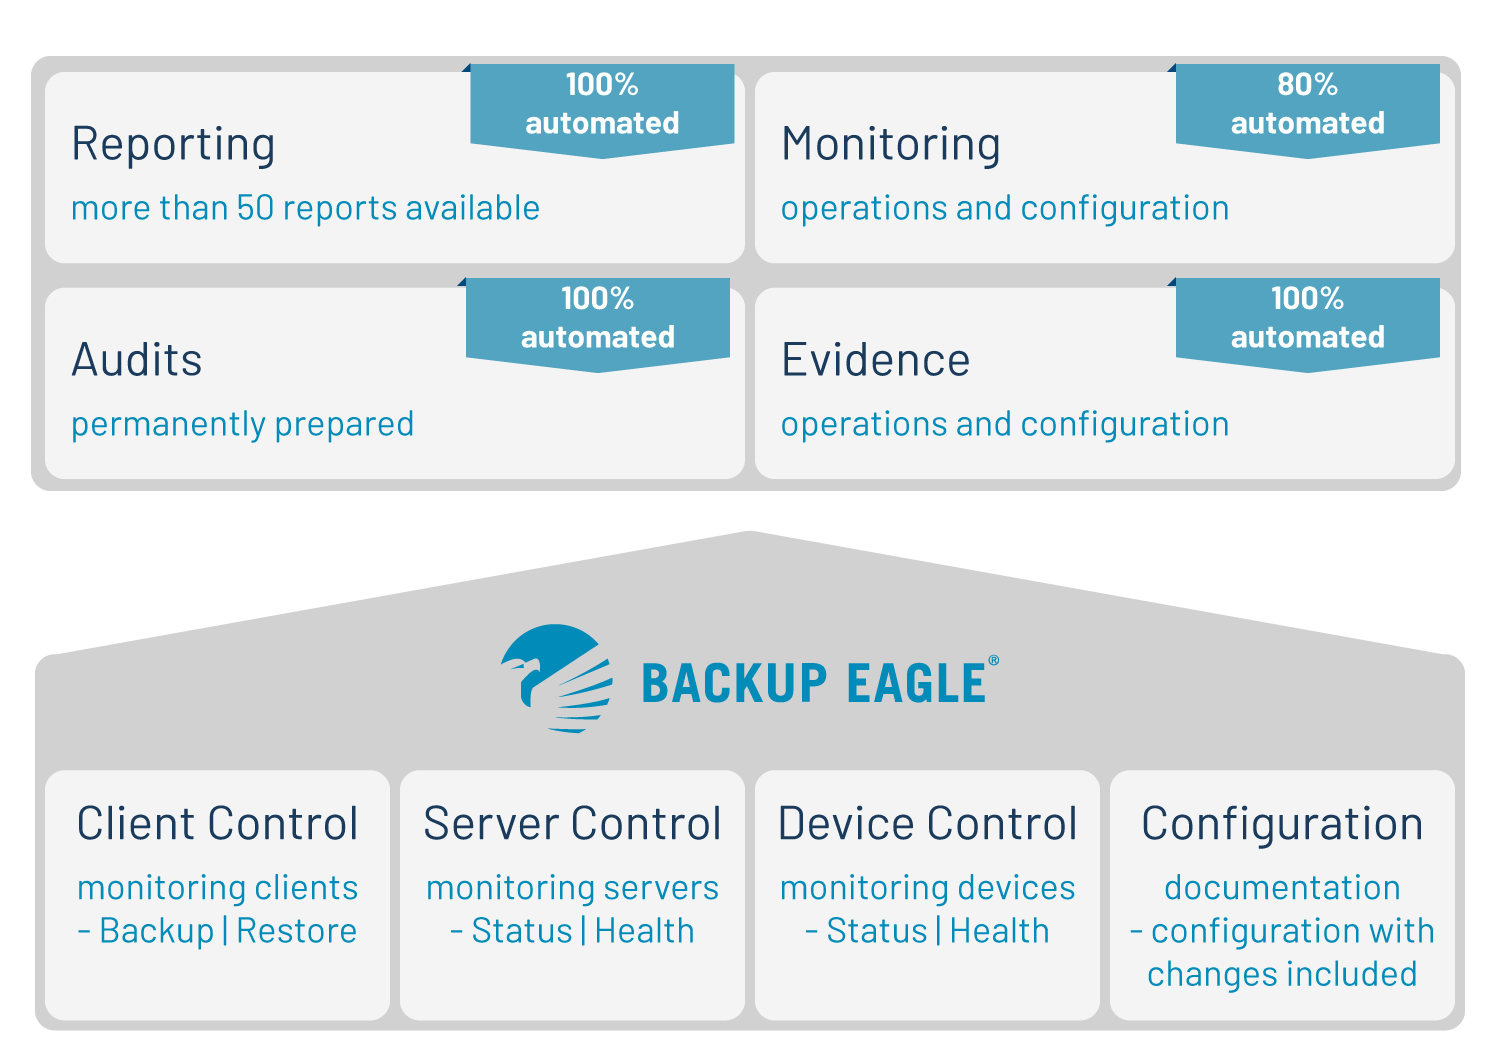 Backup Eagle: 100% automated audits, reports & evidence